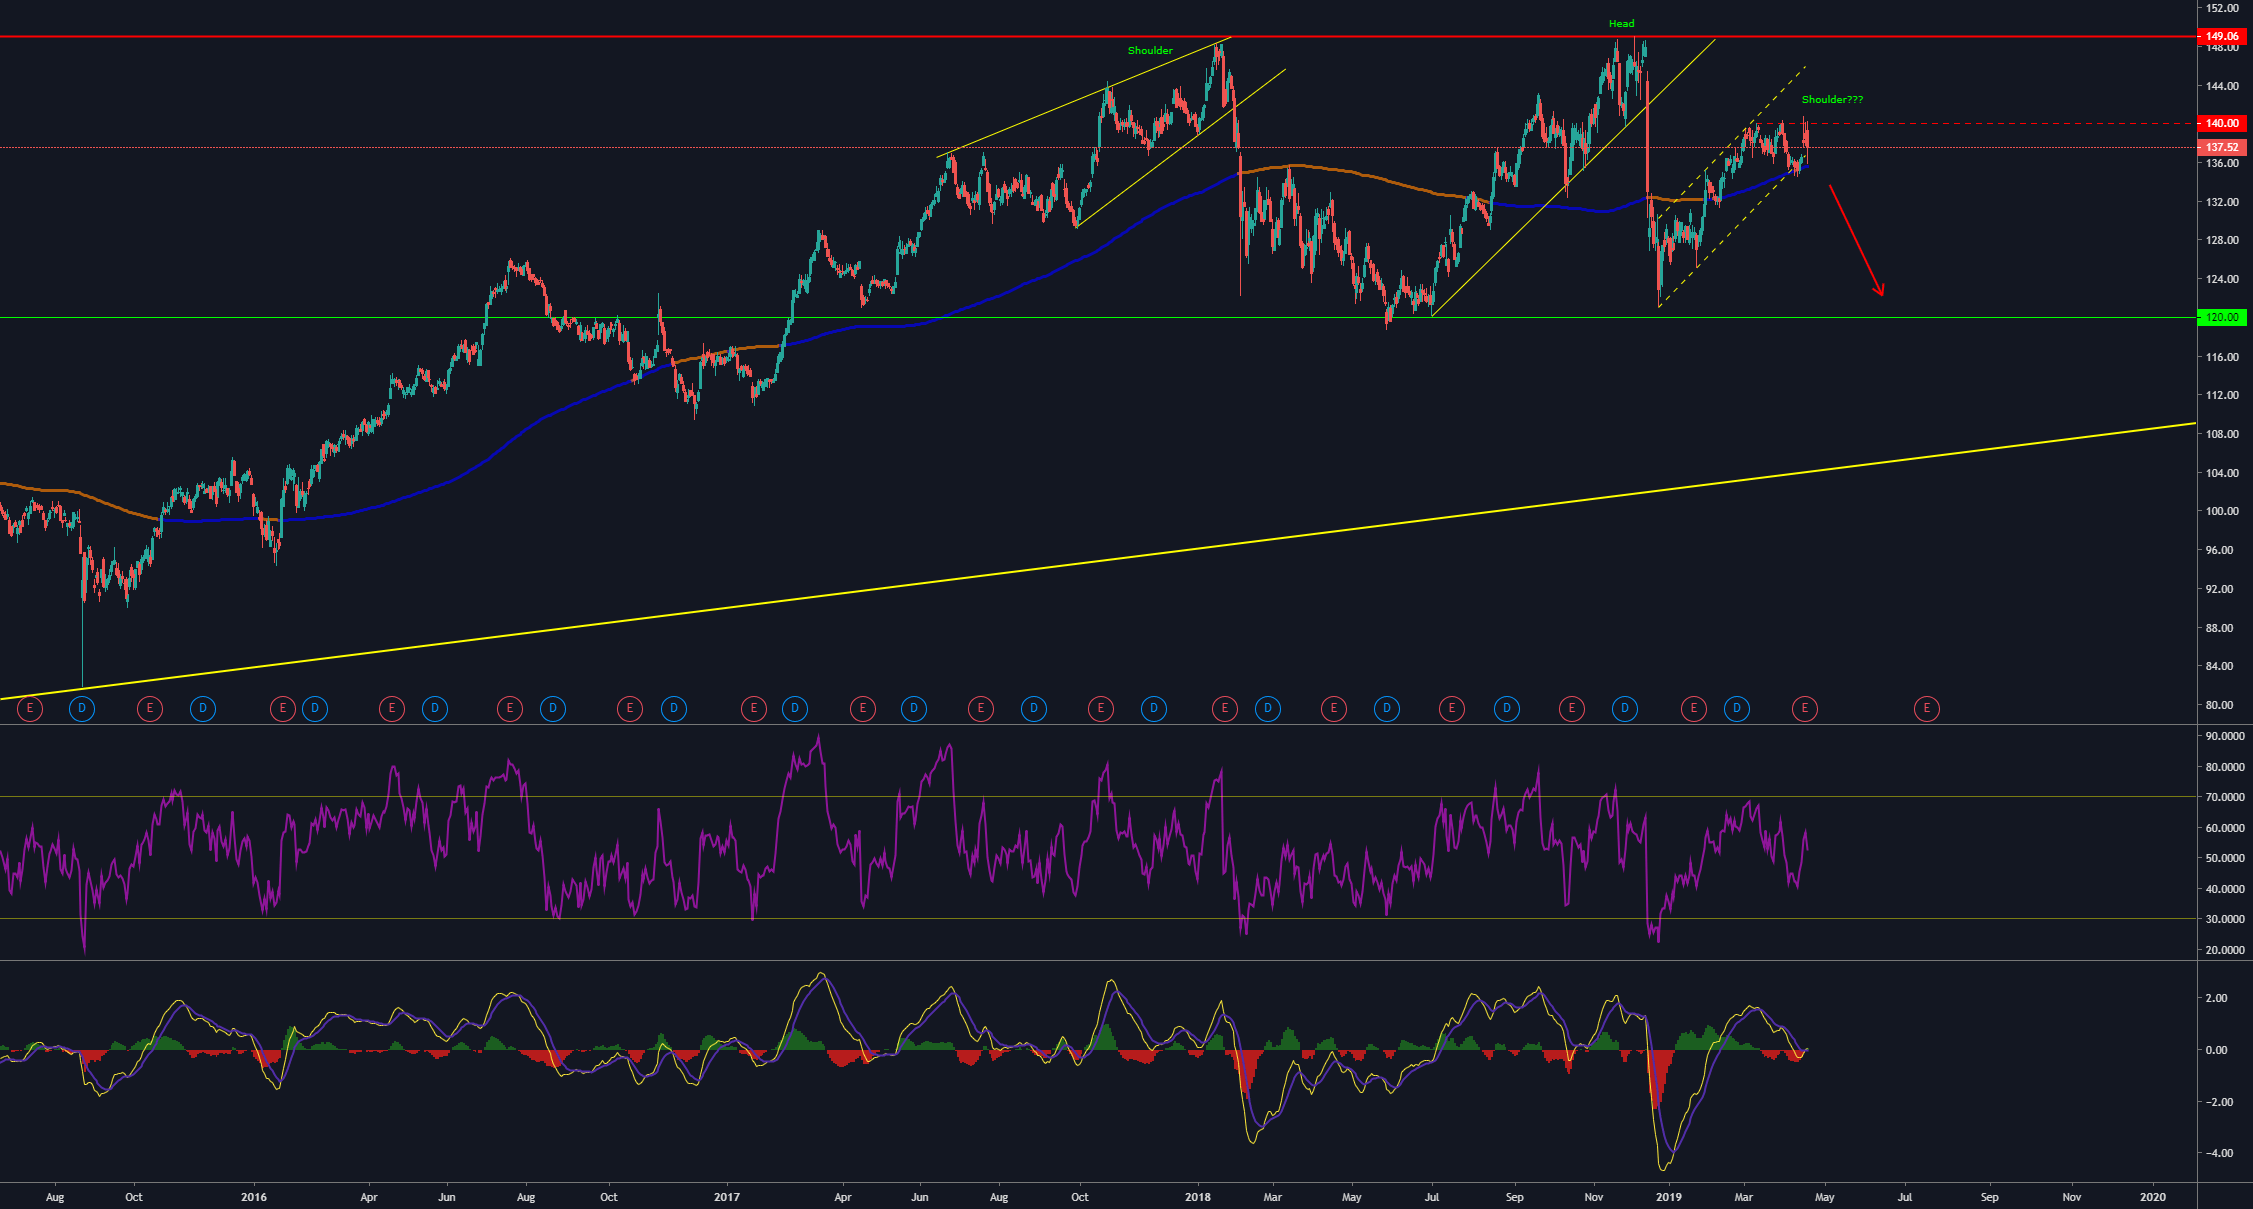 Johnson & Johnson head and shoulders for NYSE:JNJ by Antonio_trader — TradingView